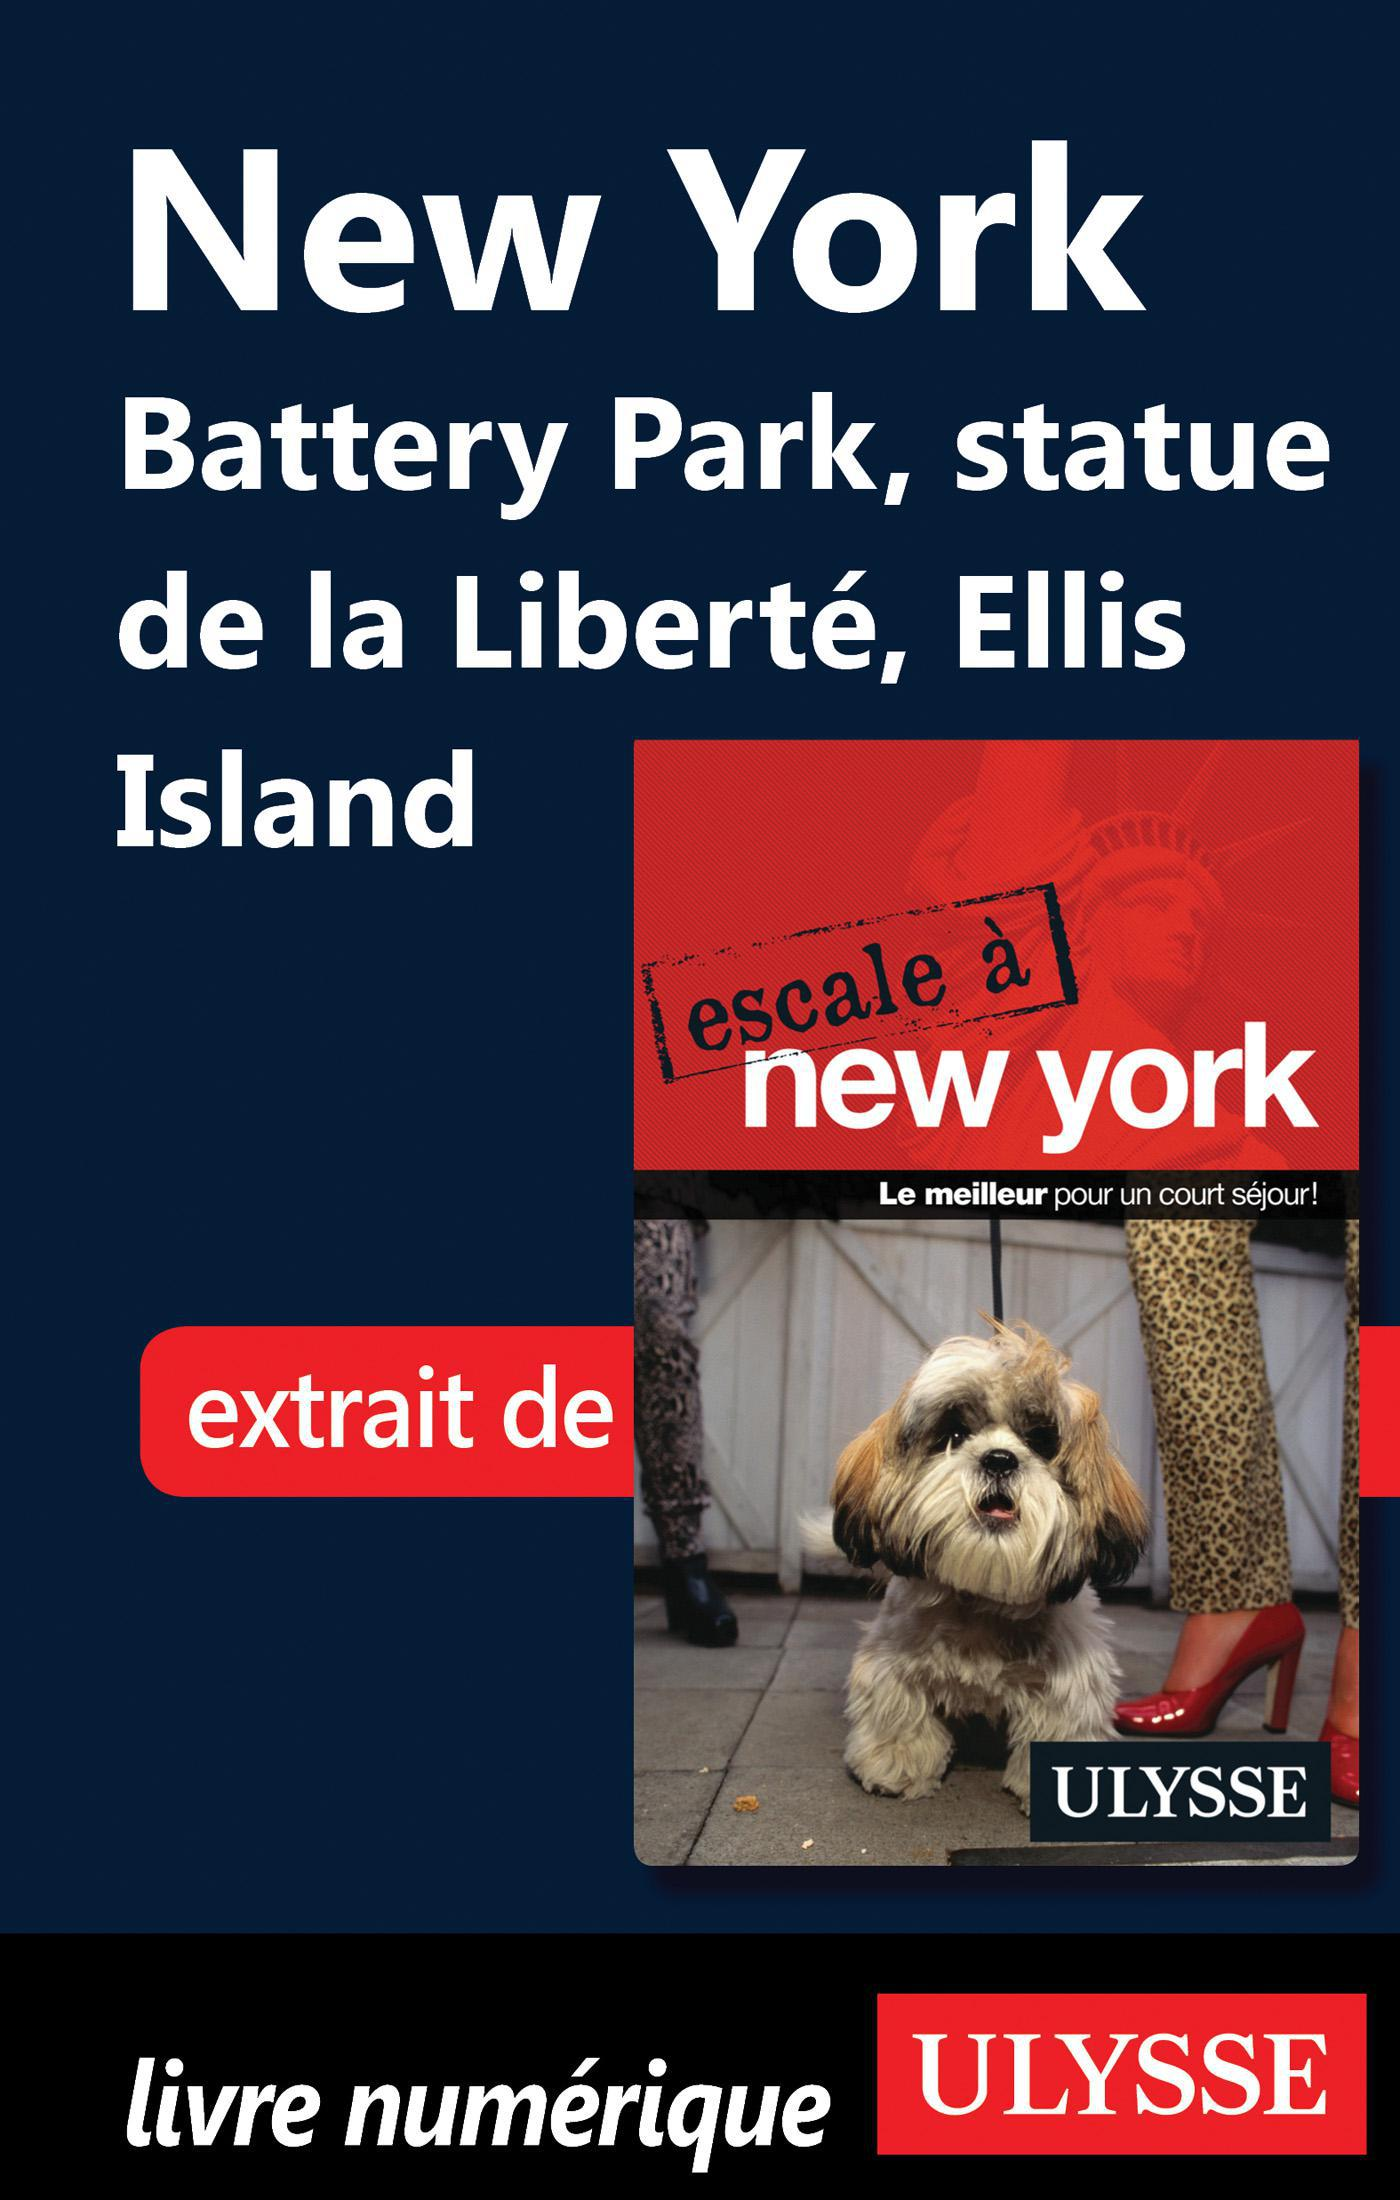 NEW YORK BATTERY PARK, STATUE DE LA LIBERTE, ELLIS ISLAND